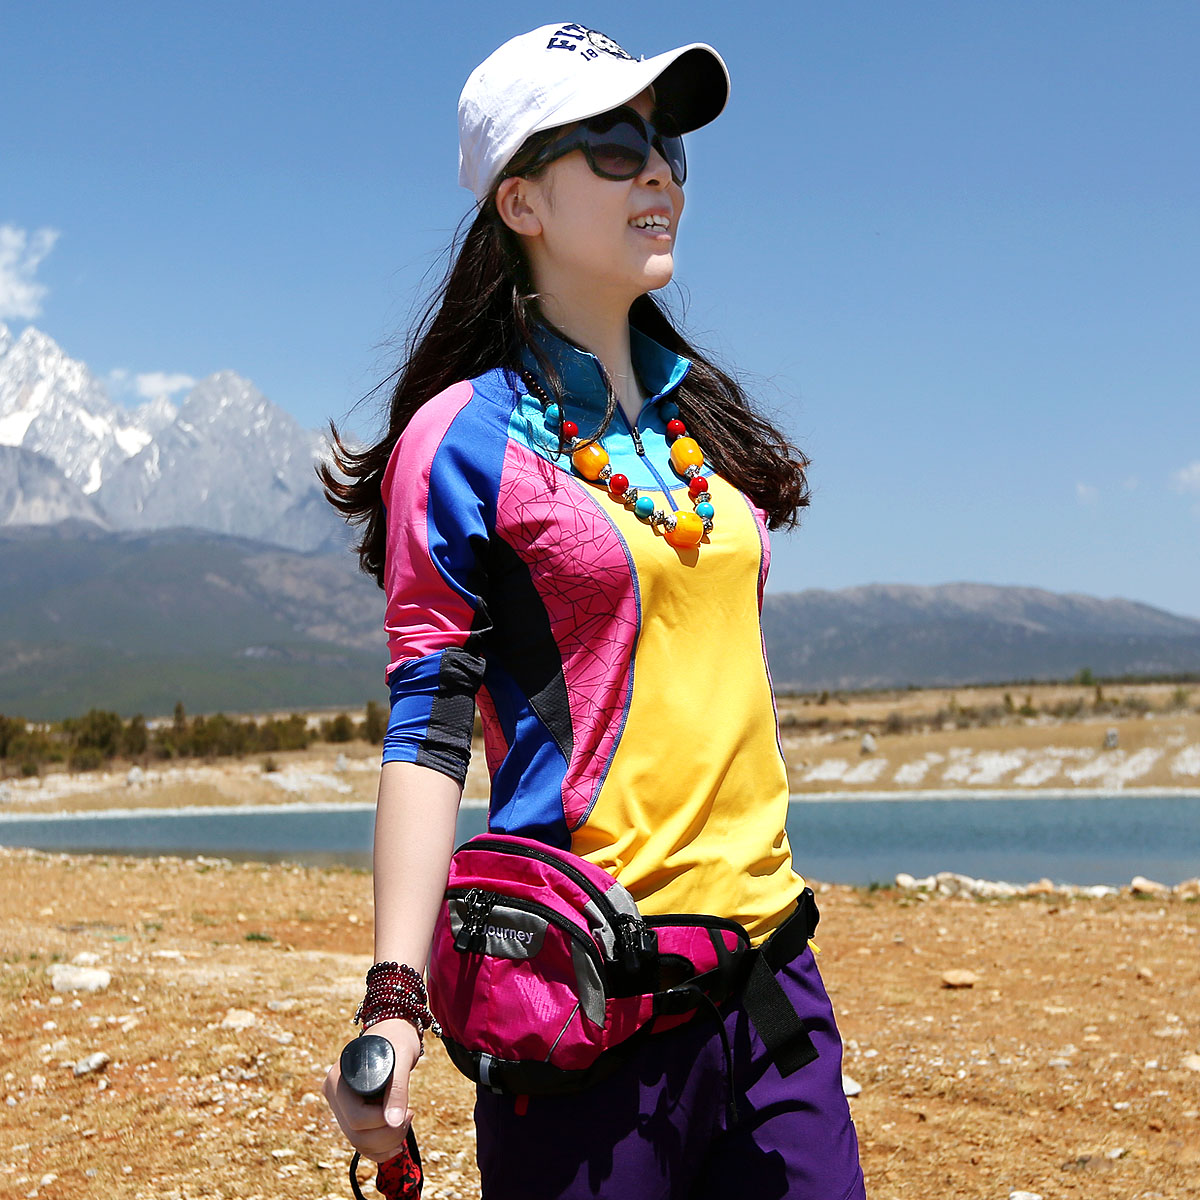 Xueqiu Island Spring and Summer Long-sleeved Fast-drying Clothes, Fast-drying T-shirt, Breathing and Sunscreen, Slim Women